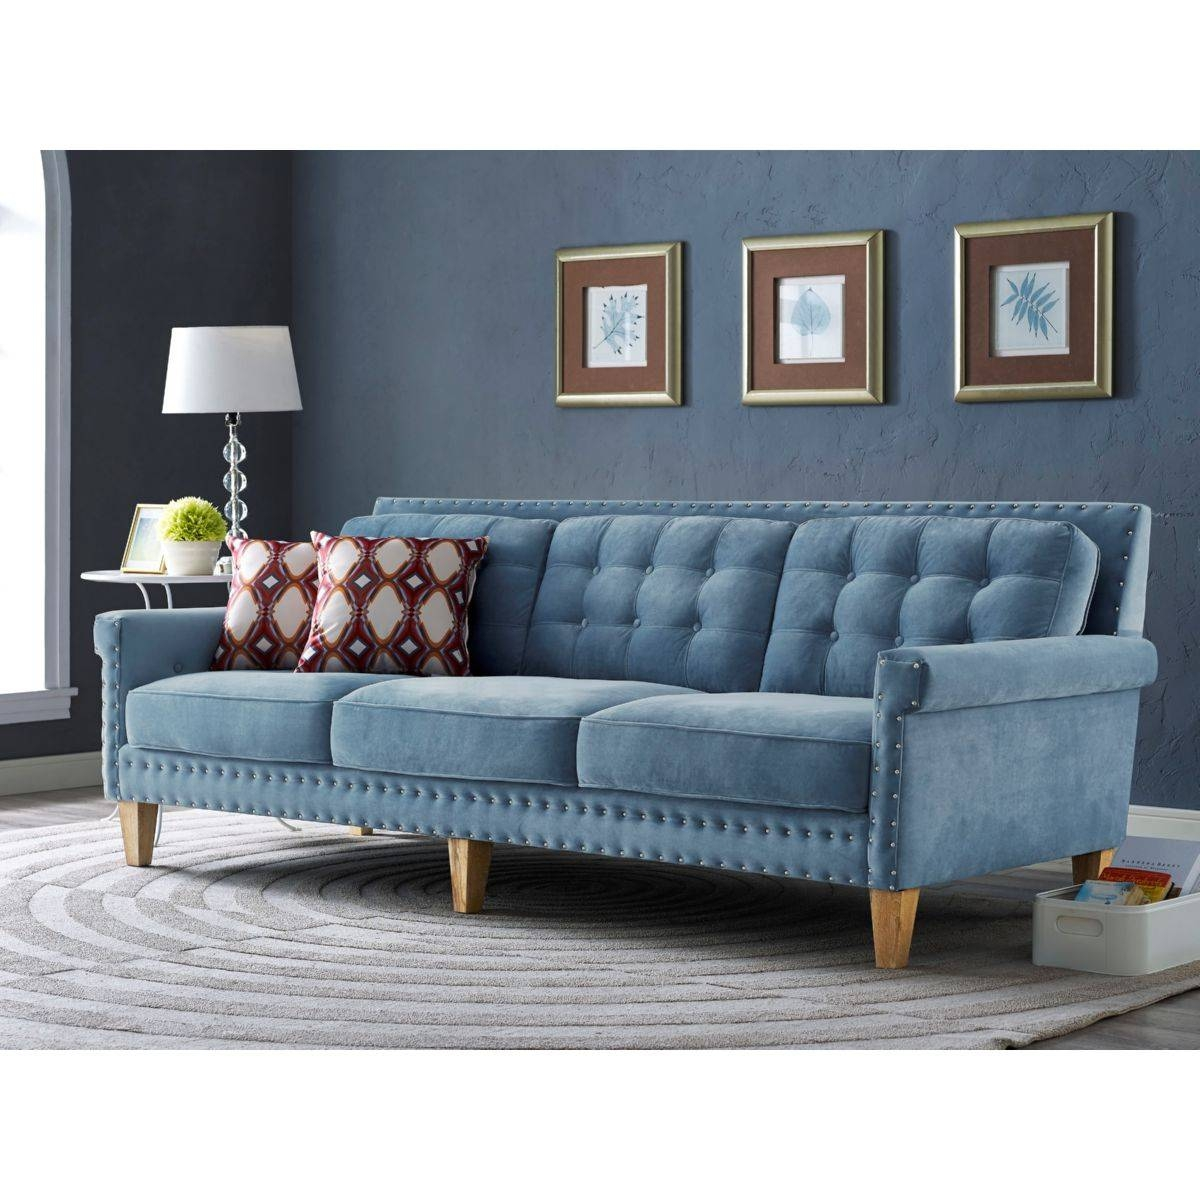 Tov Furniture Tov-S75 Jonathan Tufted Blue Velvet Sofa W/ Silver within Silver Tufted Sofas (Image 13 of 15)